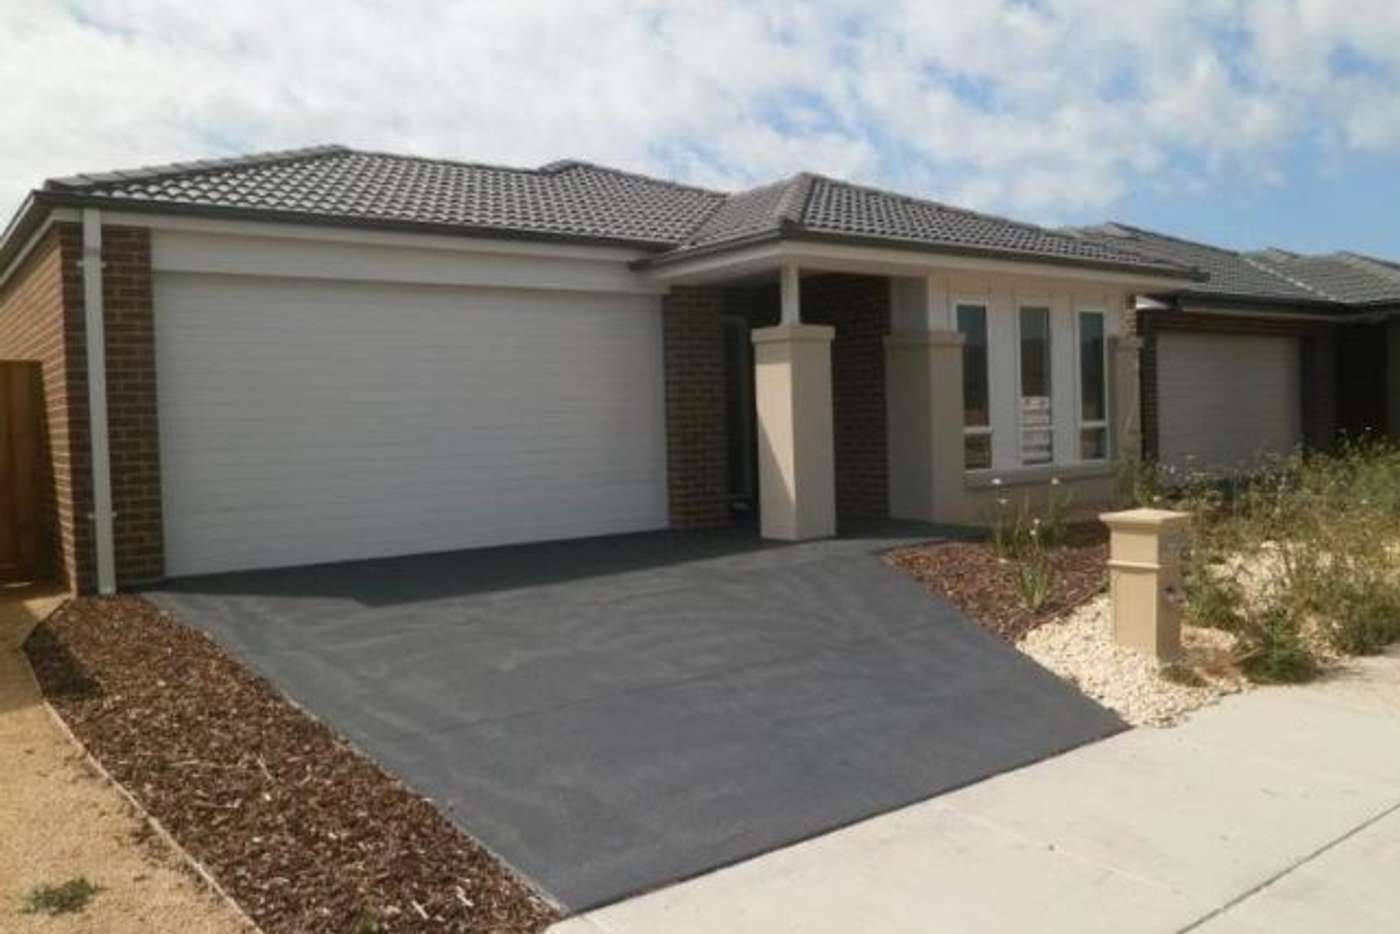 Main view of Homely house listing, 6 Surrey Grove, Point Cook VIC 3030